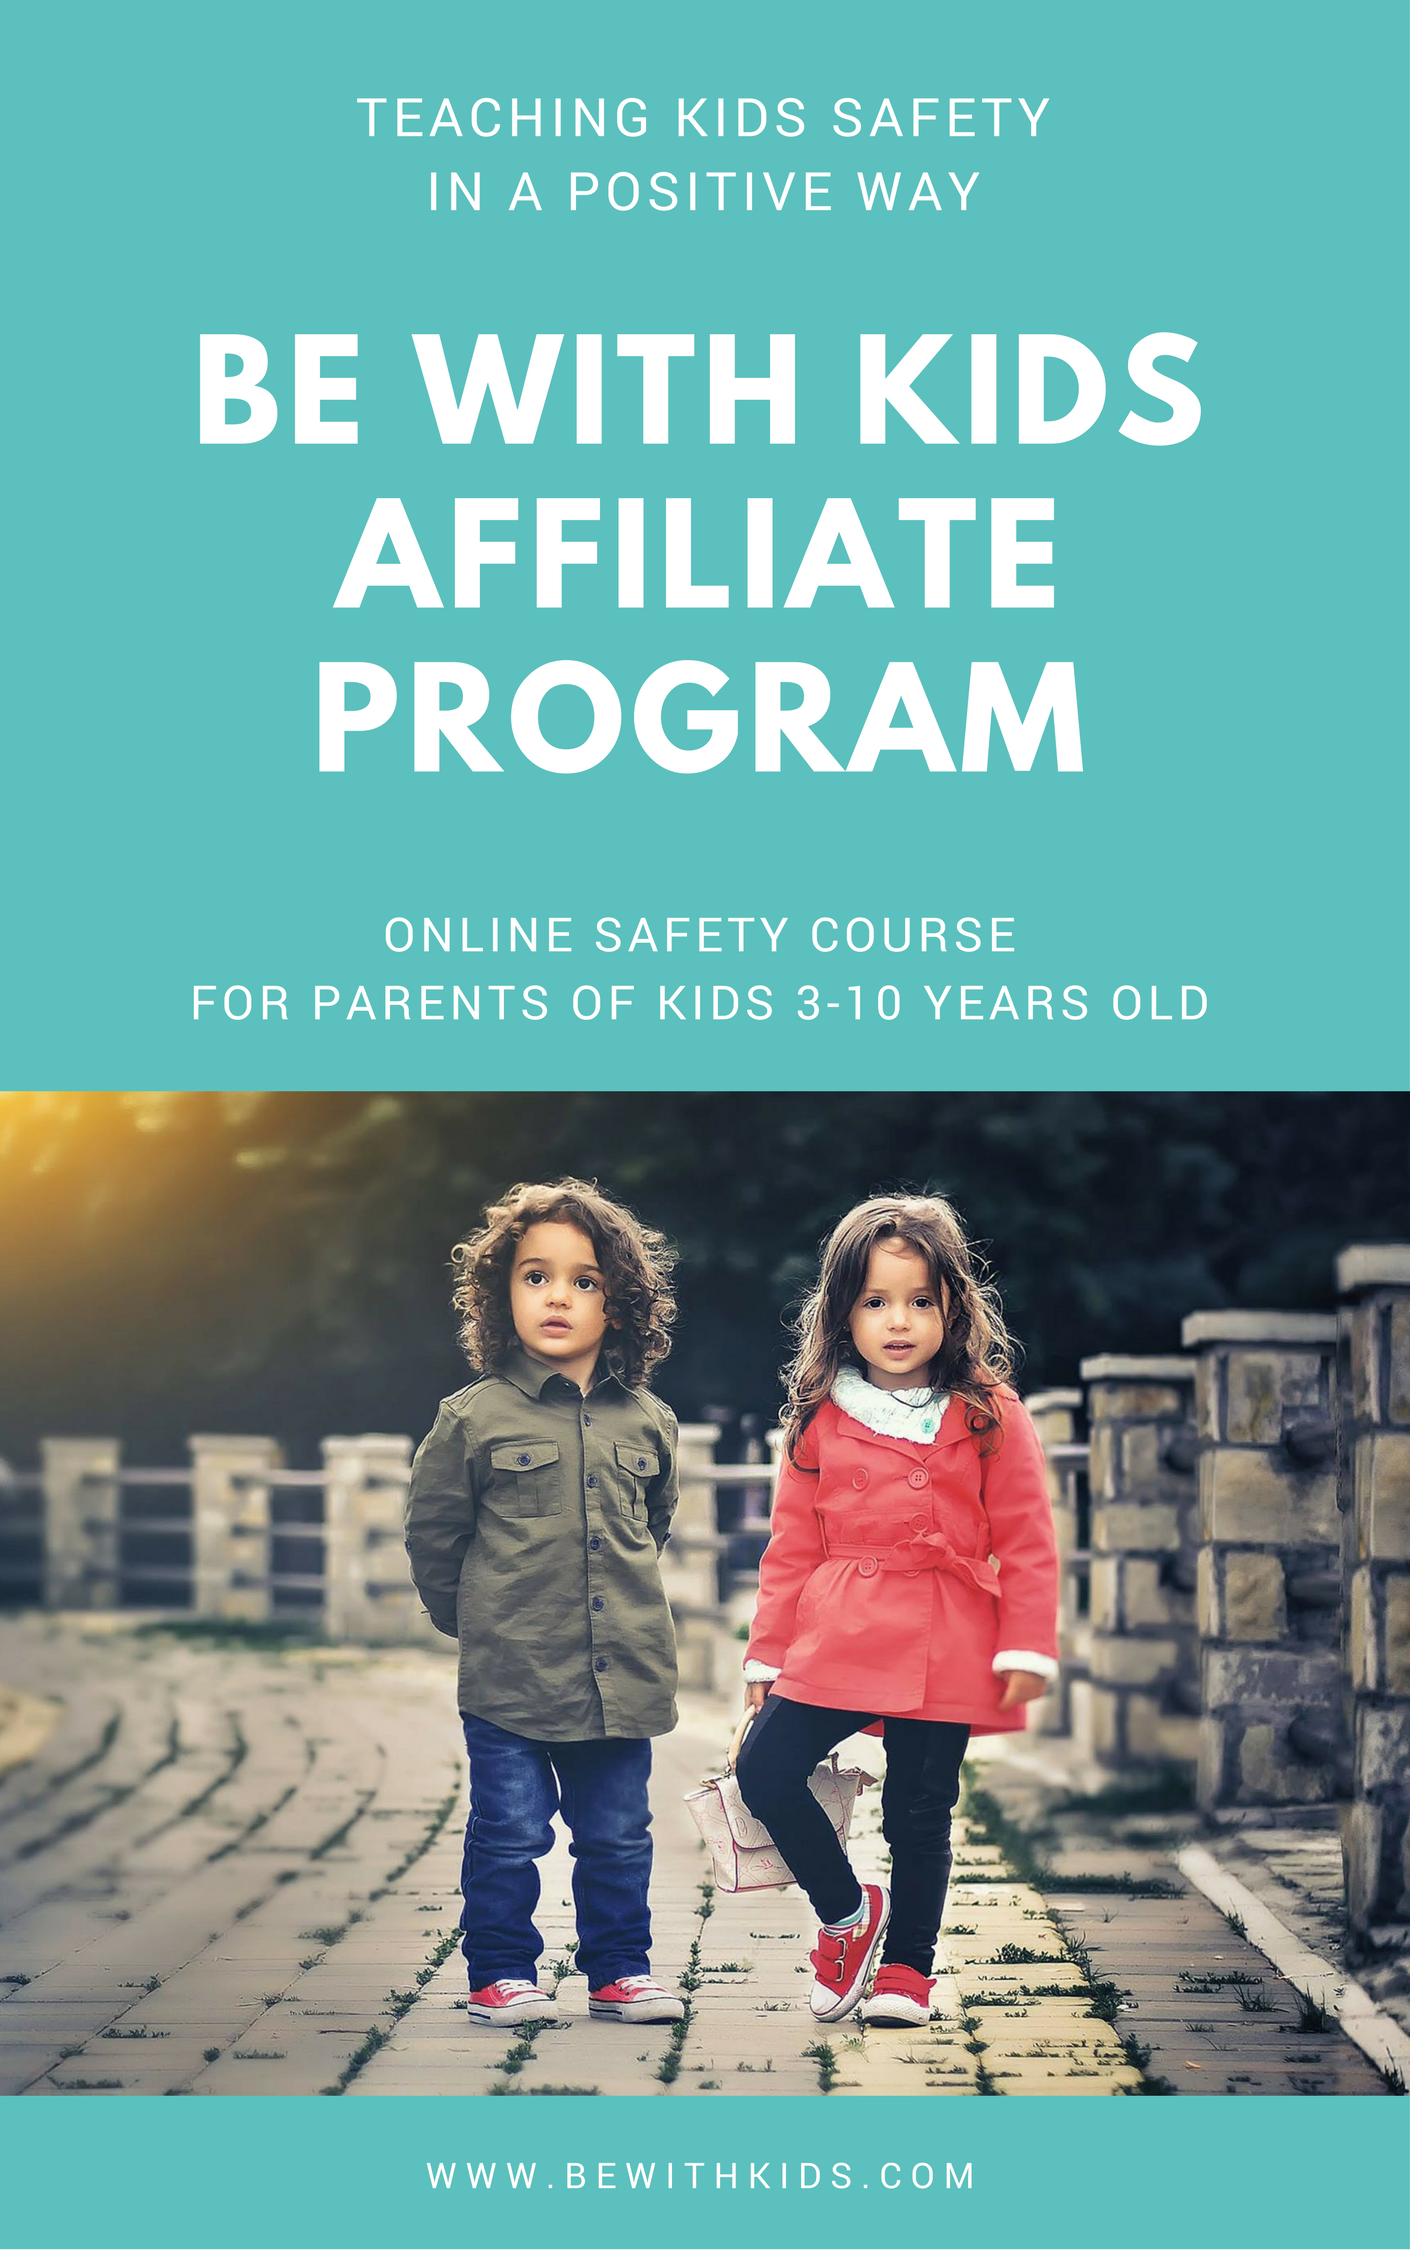 Teach your child safety with people in a positive way - join Be WITH kids affiliate program, spread the word, earn commissions.